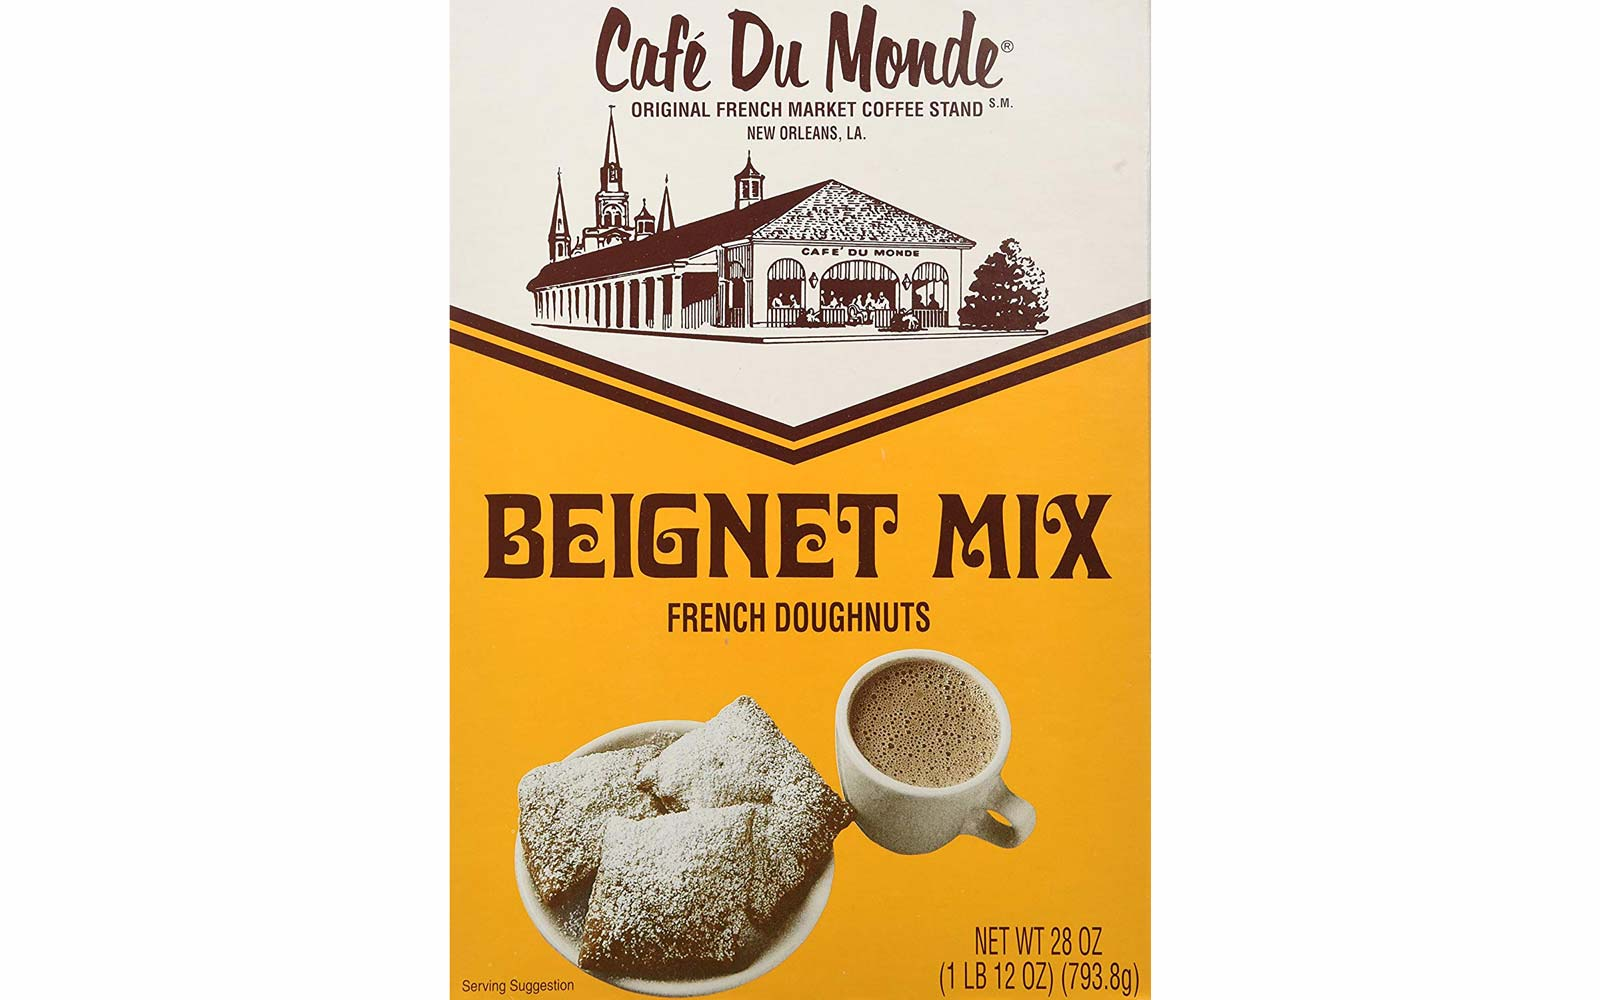 Cafe du Monde Mix Beignet Mix